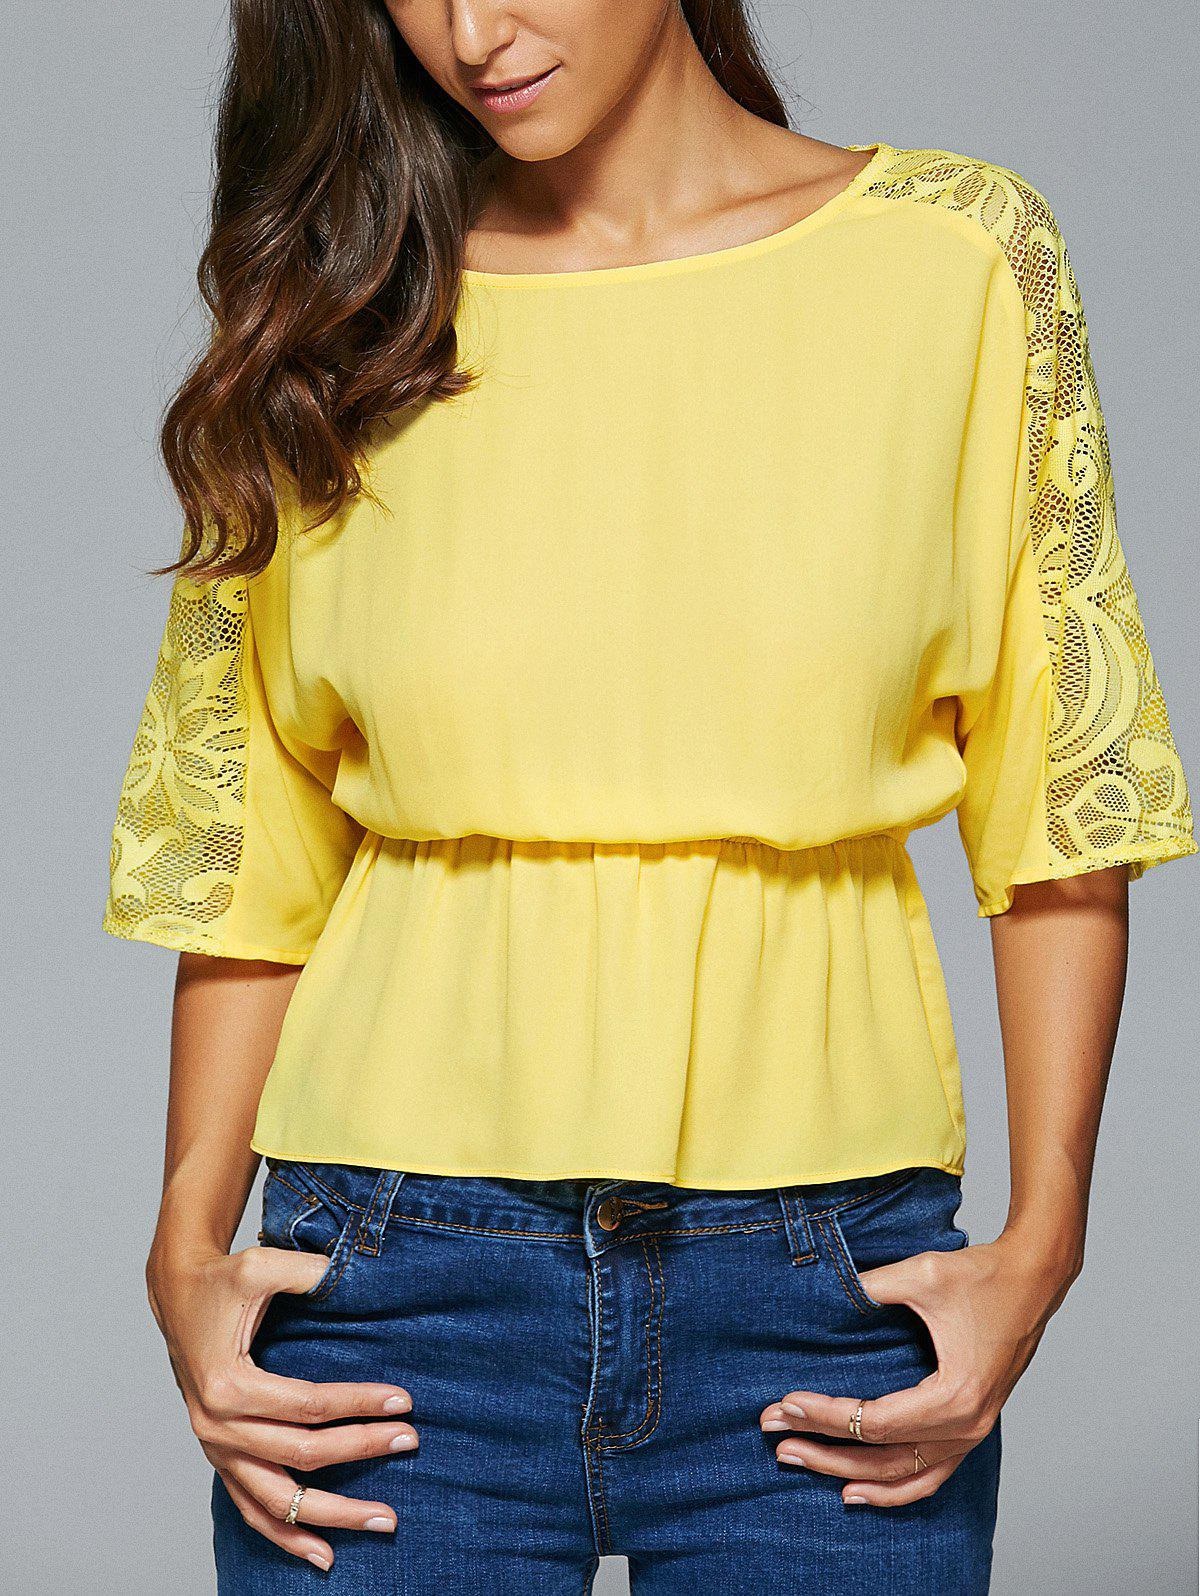 Lace Spliced 3/4 Sleeve Elastic Waist Blouse - YELLOW XL